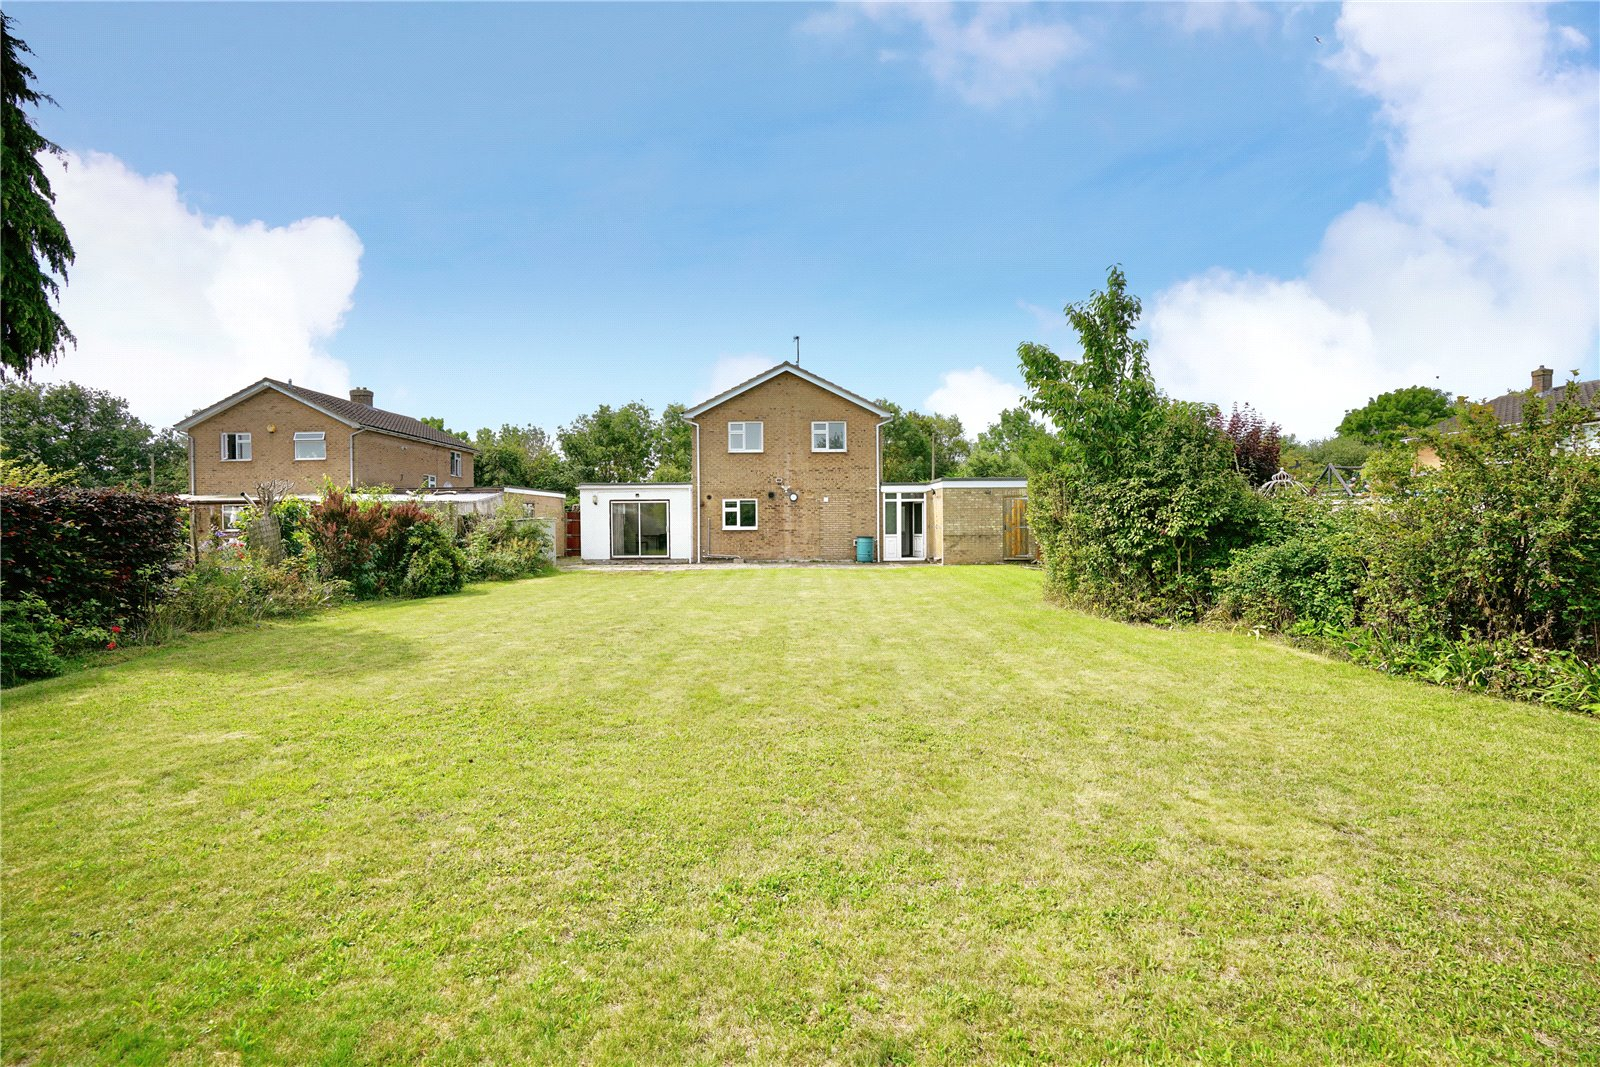 4 bed house for sale in Hemingford Grey, PE28 9ER - Property Image 1